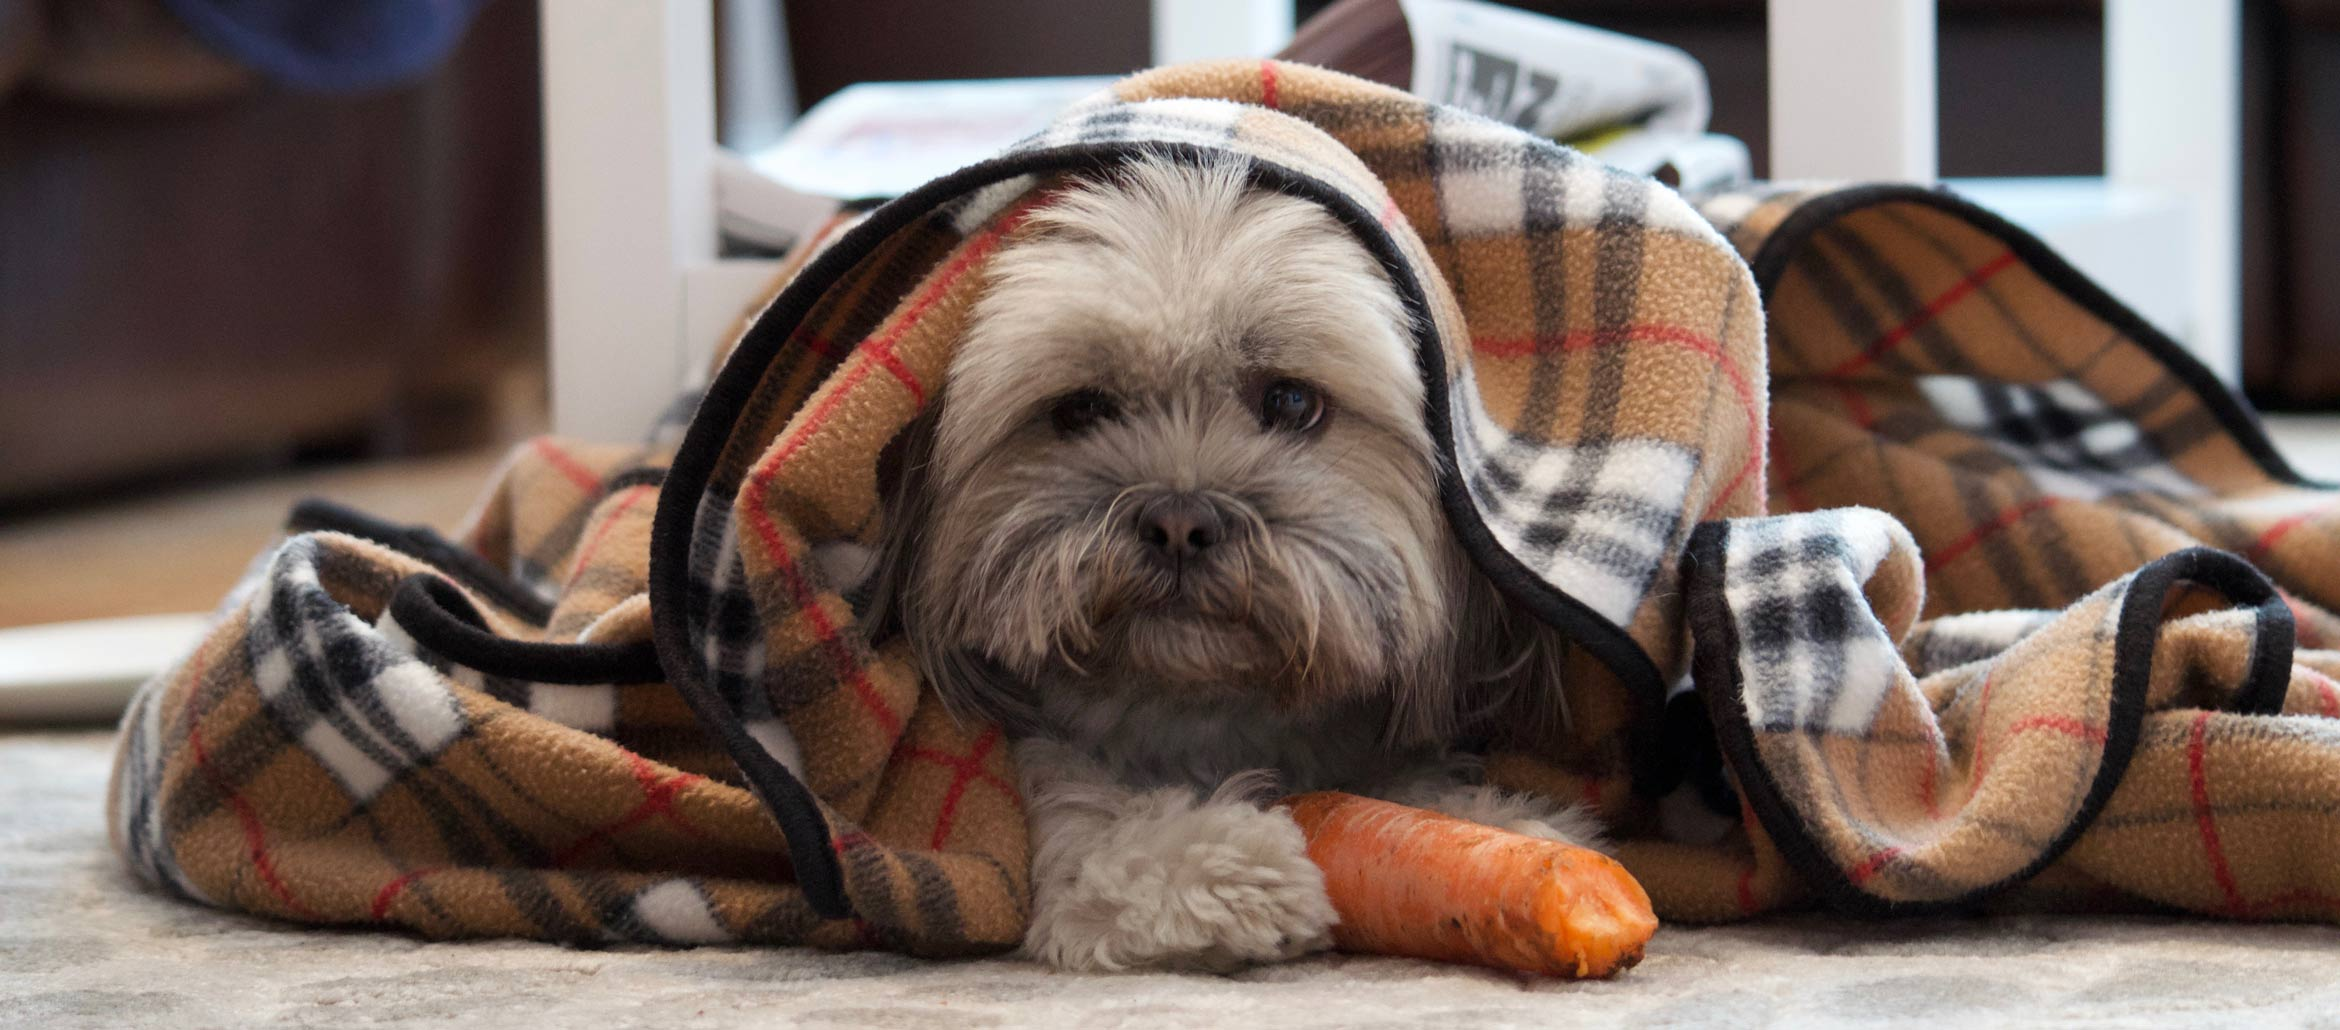 Puppy with a carrot and a blanket